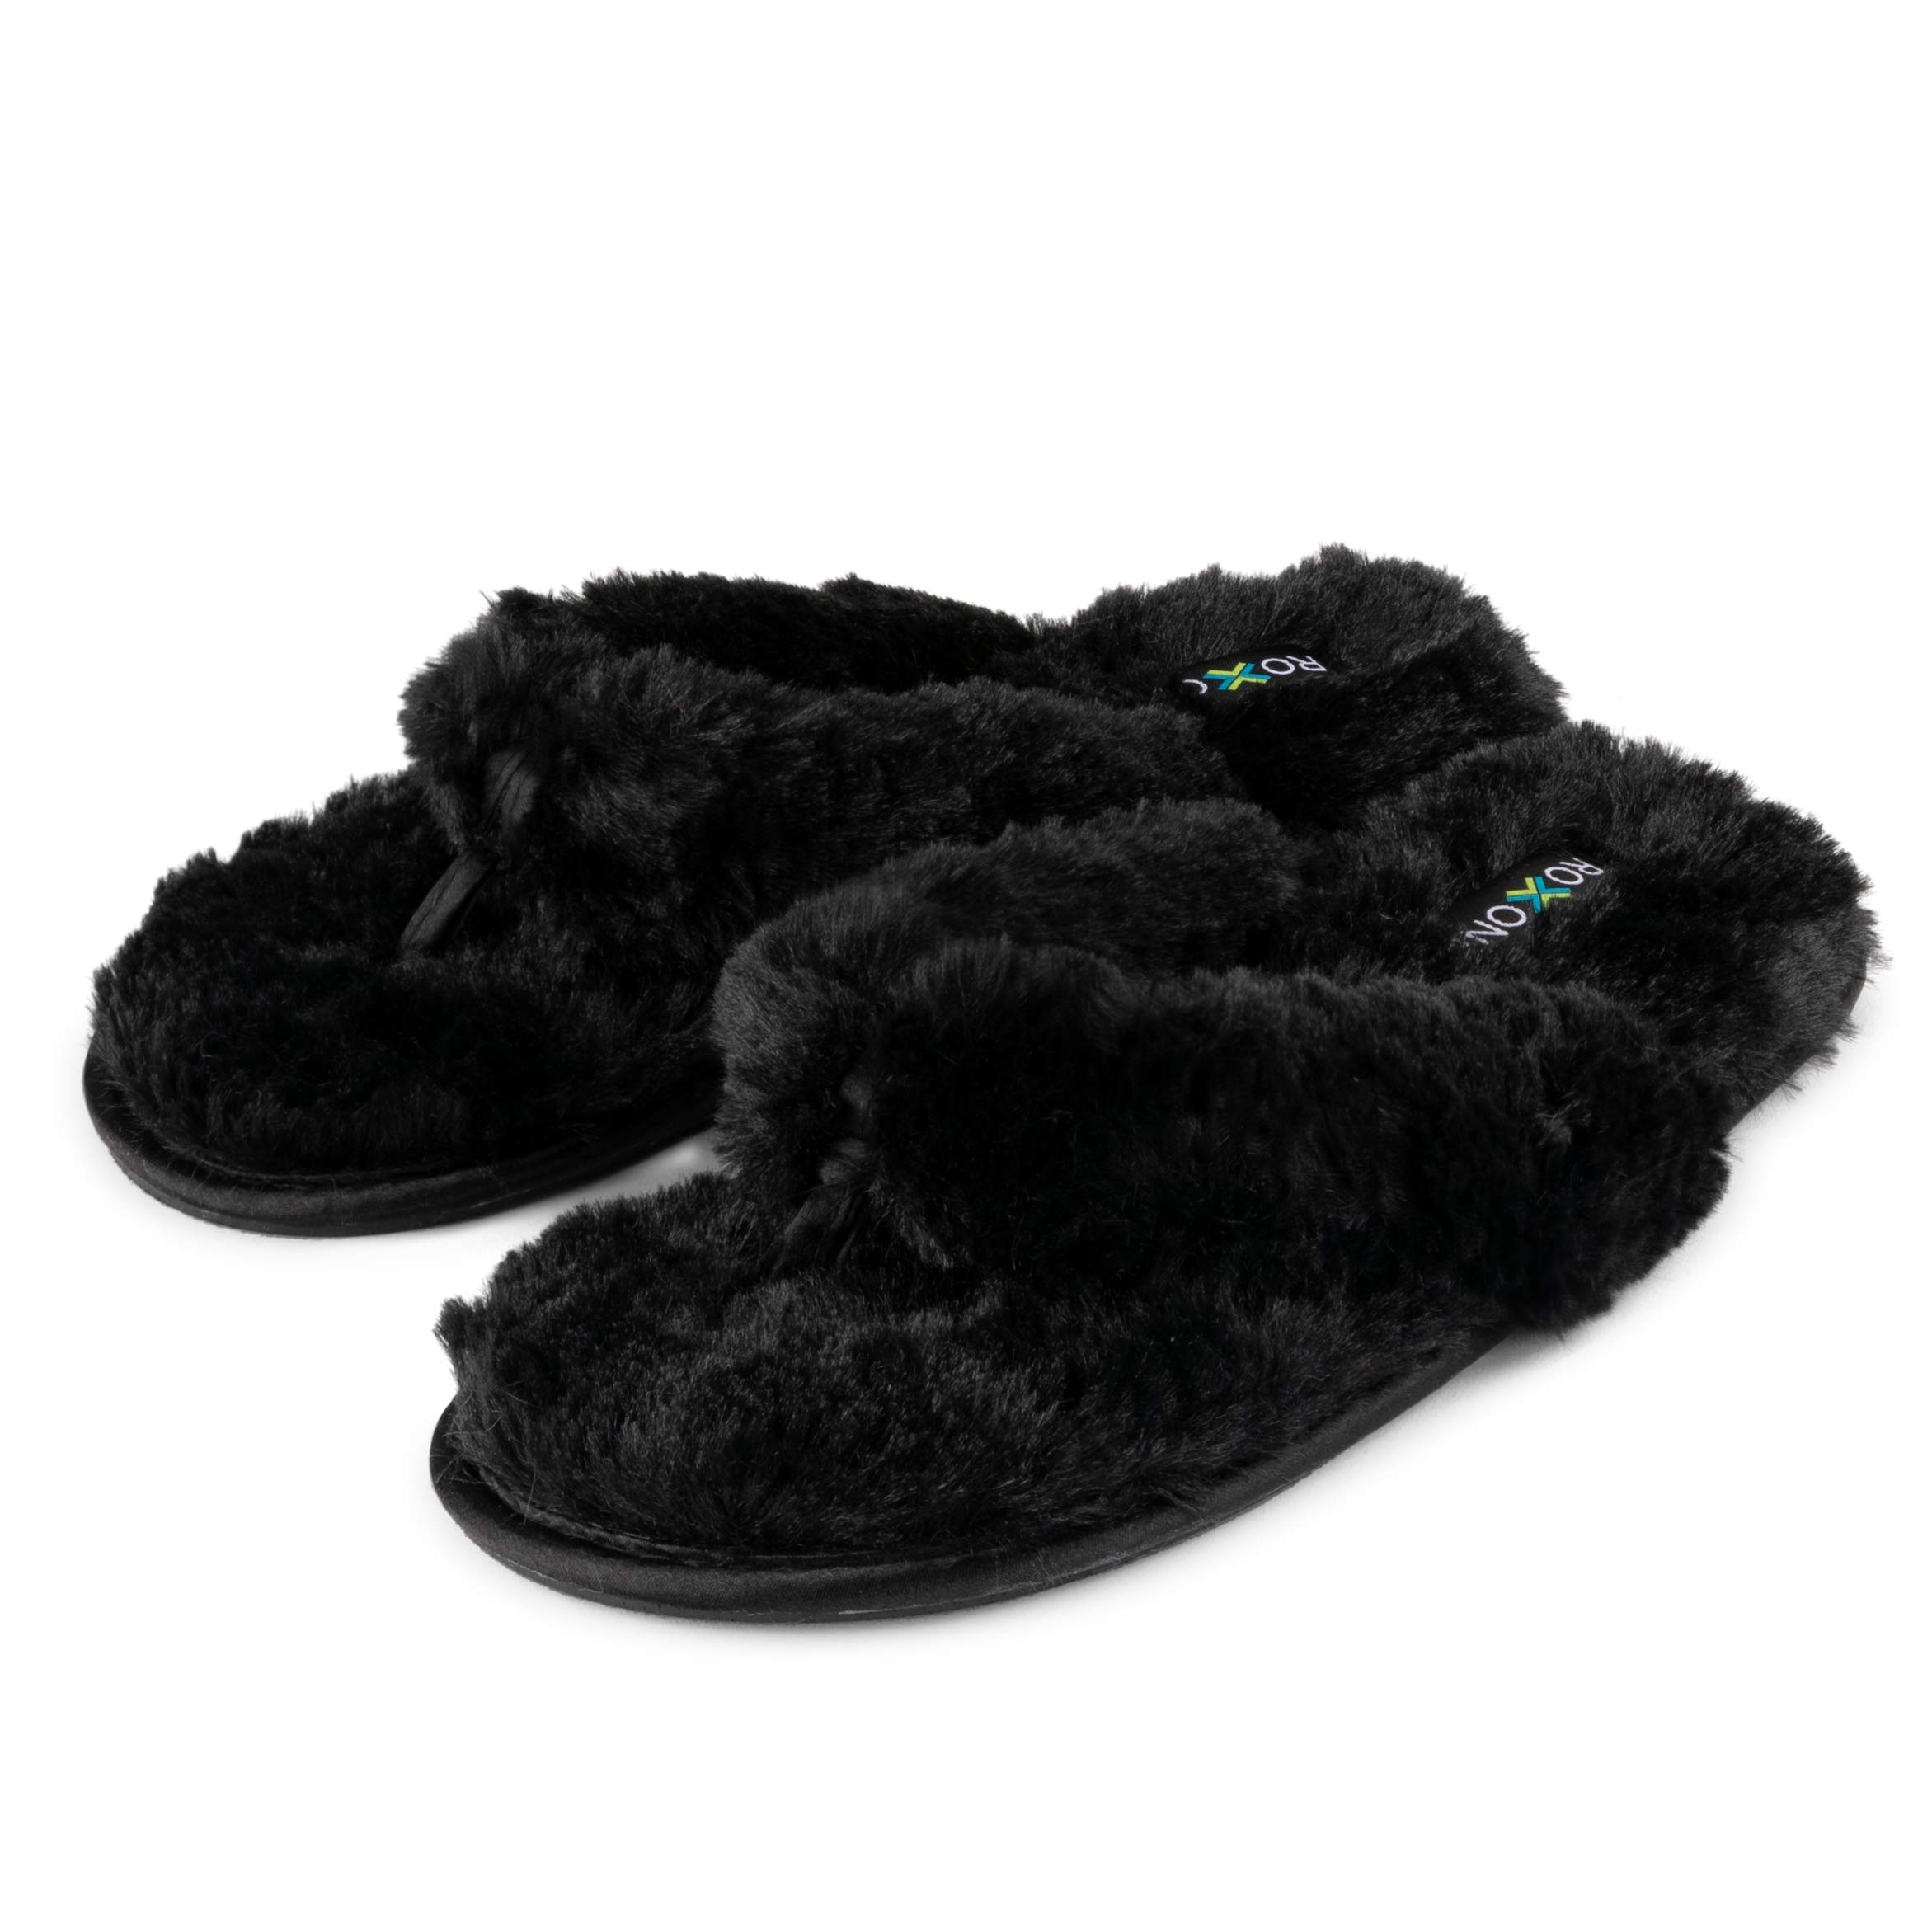 6c300535c1e105 Roxoni Fuzzy House Slippers for Women – Comfortable Furry Spa Thongs – Cozy  Slip On Flip Flops - Soft Insole   Rubber Outsole Black